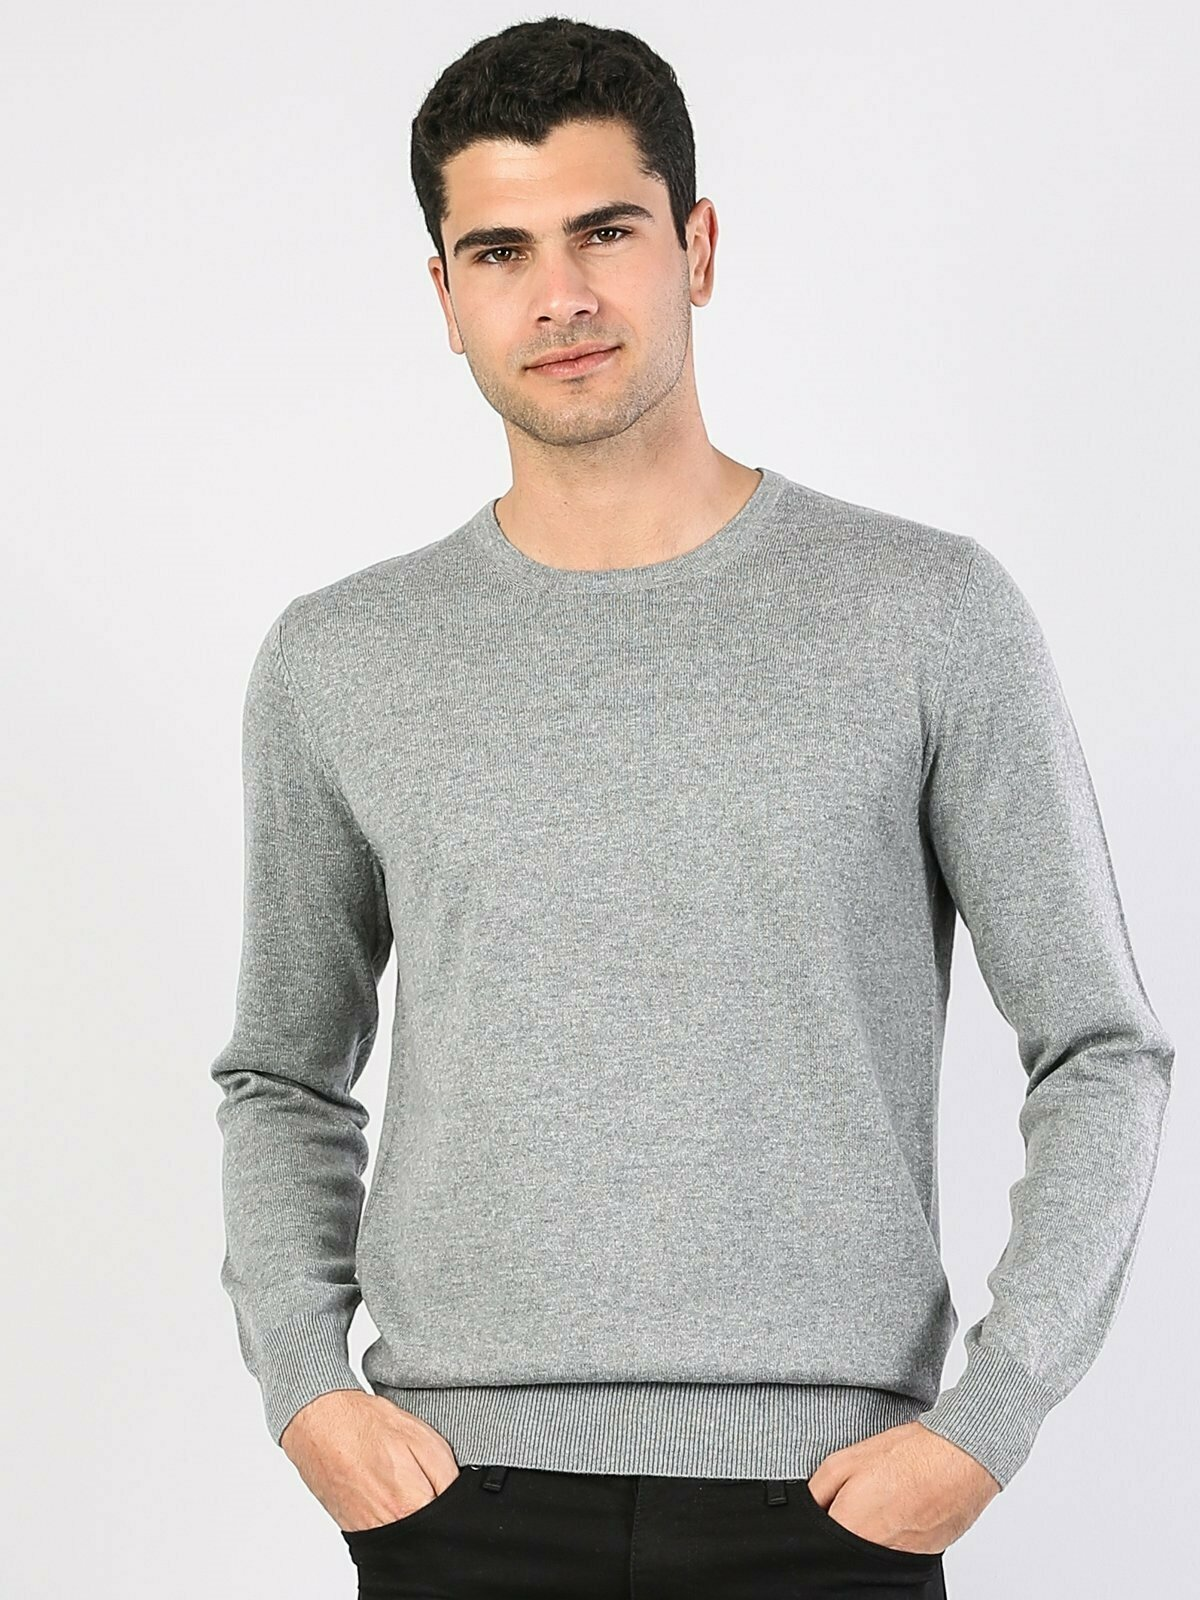 Colins Men Regular Fit Grey Heather SweatersMen's sweater fashion sweater outerwear,CL1023186